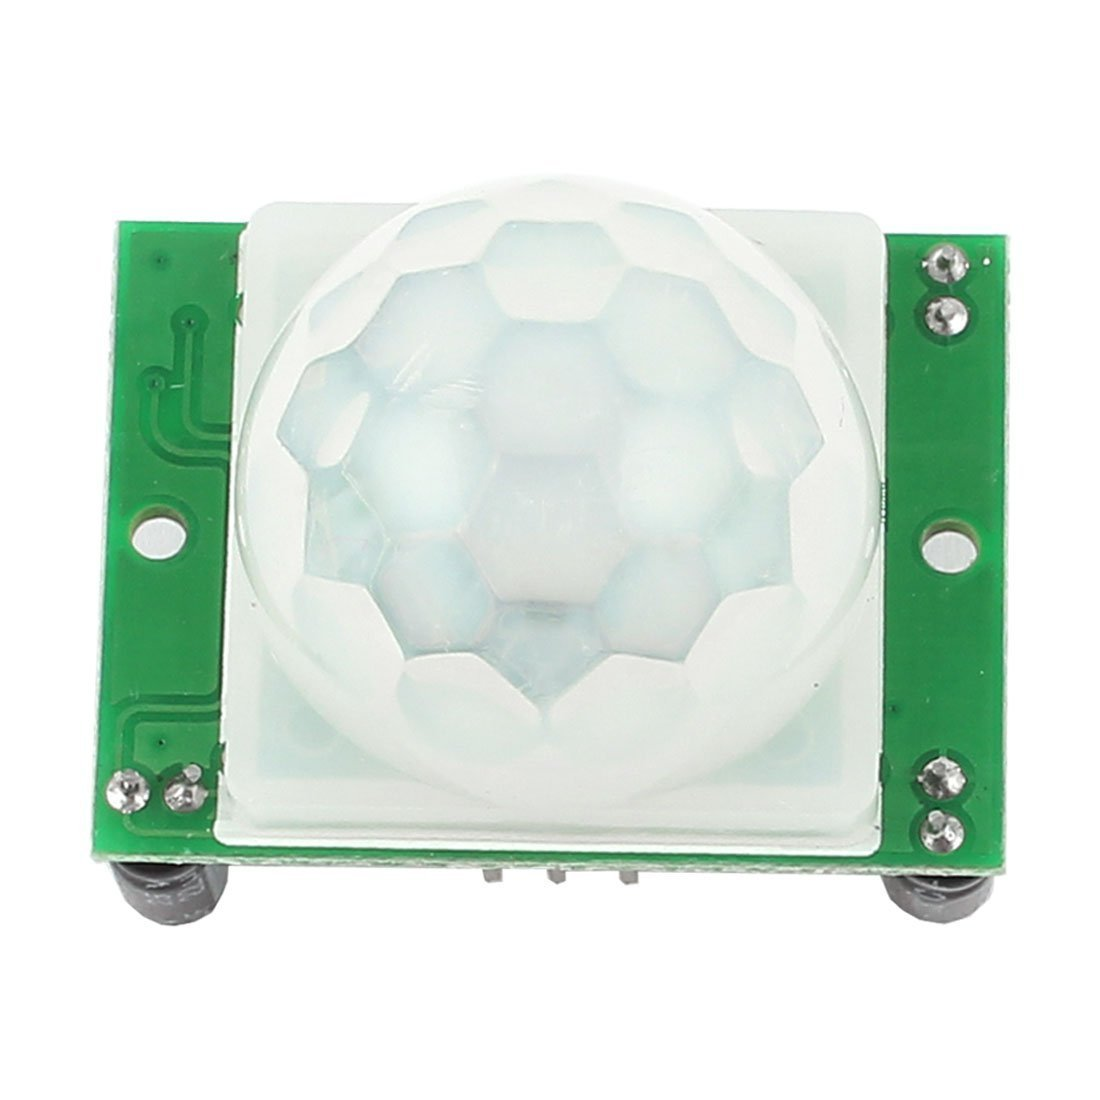 Amazon.com: DealMux Ajuste IR Pyroelectric PIR Motion Sensor Detector Módulo HC-SR501: Car Electronics